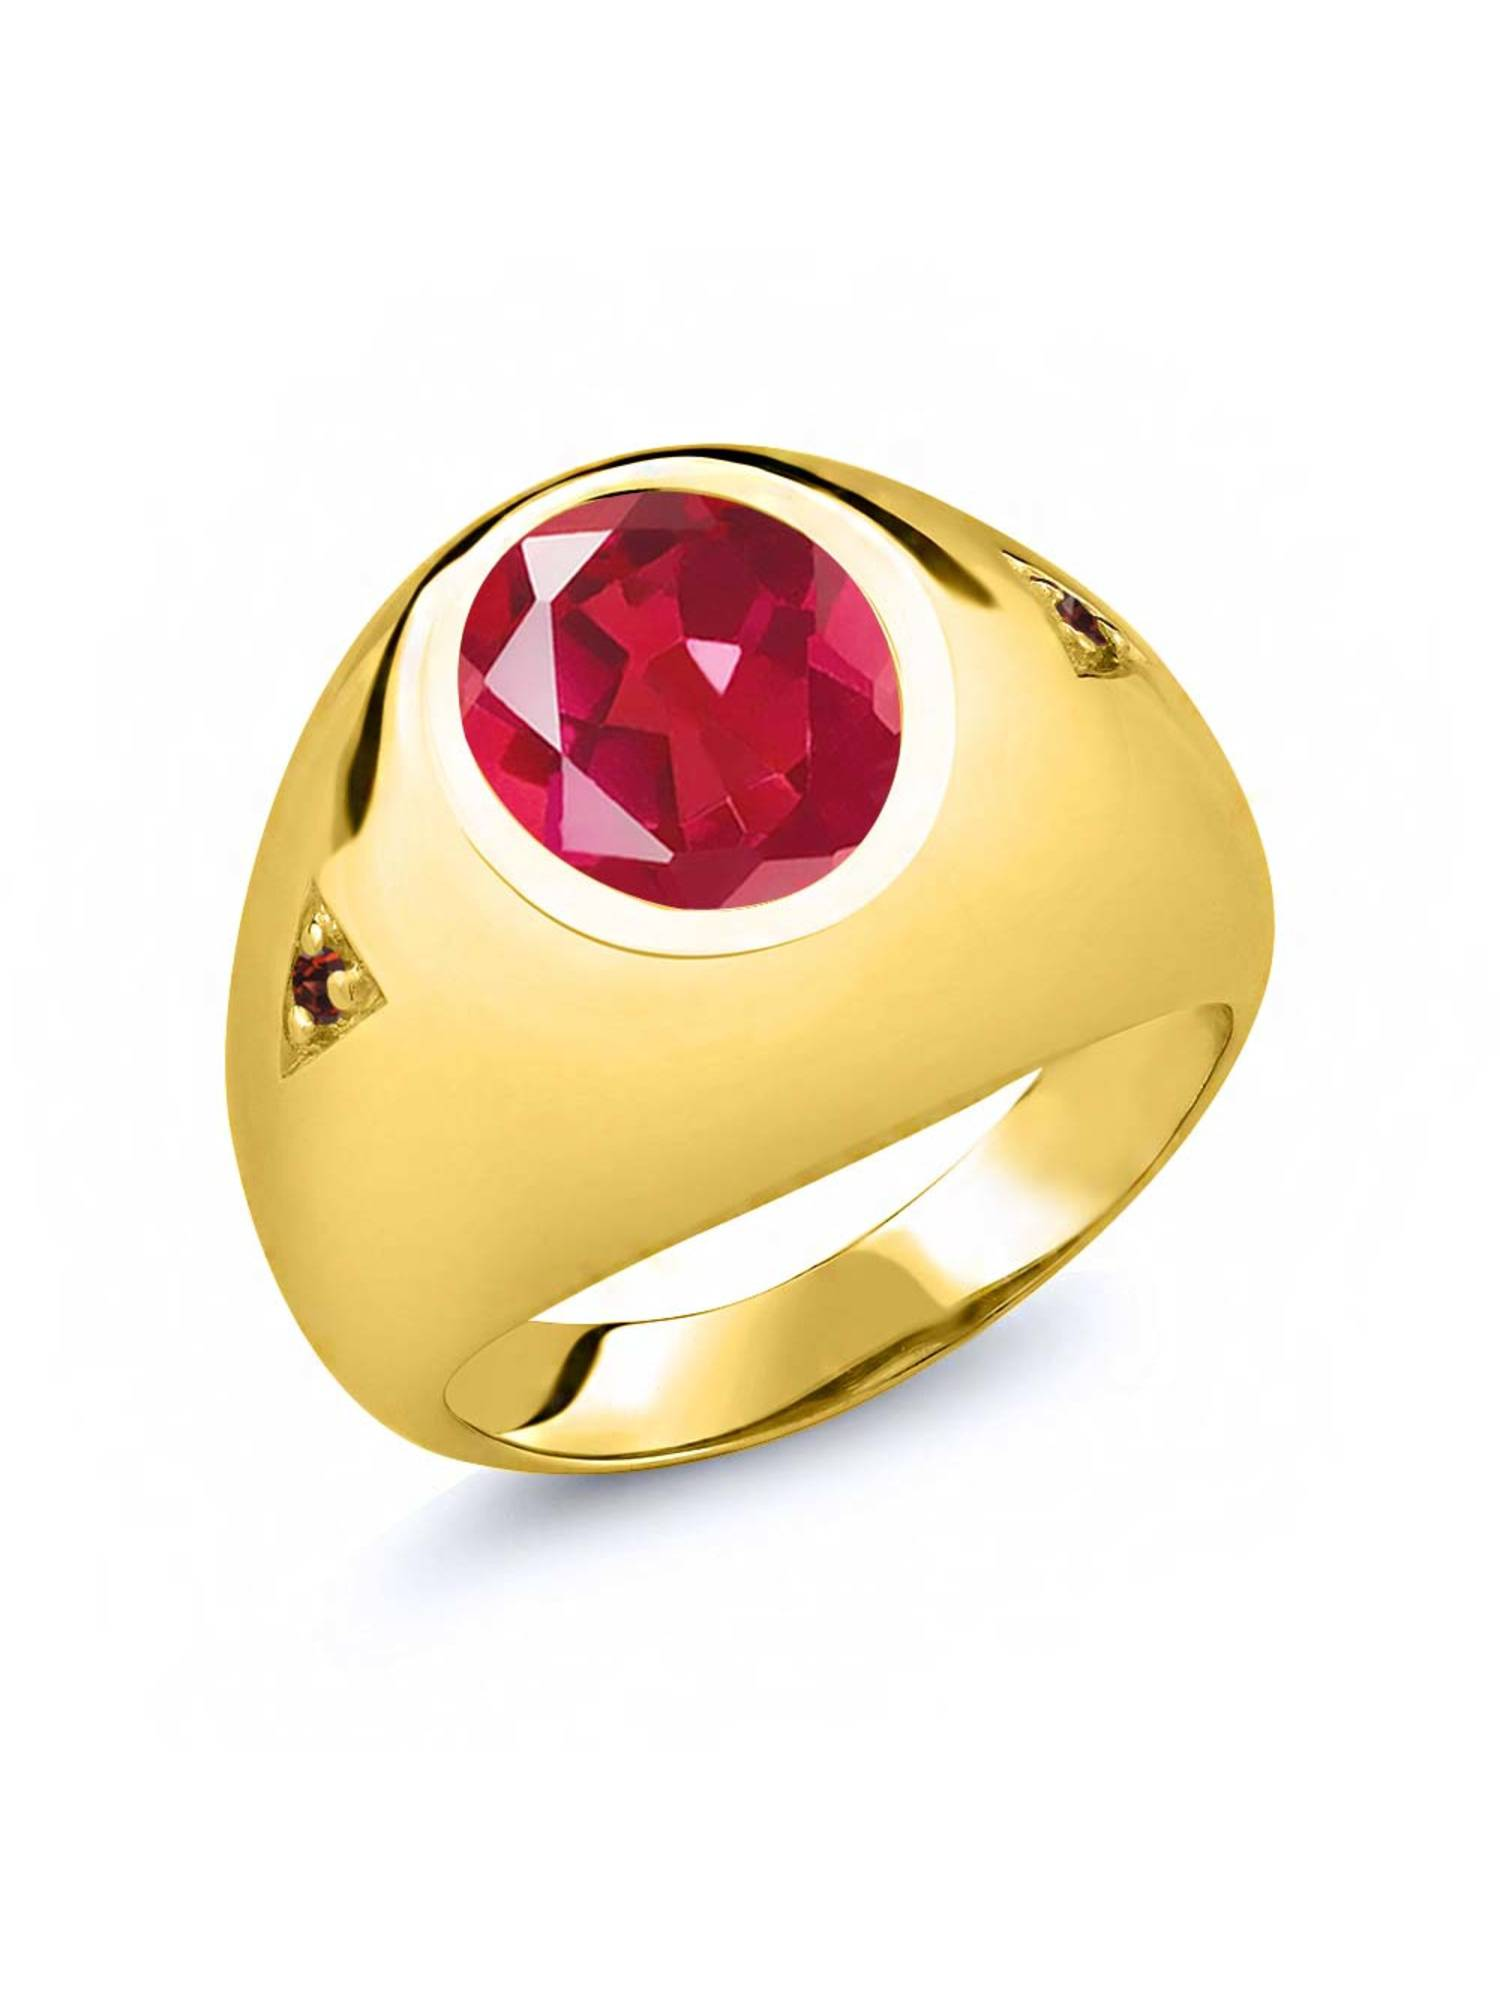 4.08 Ct Last Dance Pink Mystic Quartz Red Garnet 18K Yellow Gold Plated Silver Men's Ring by